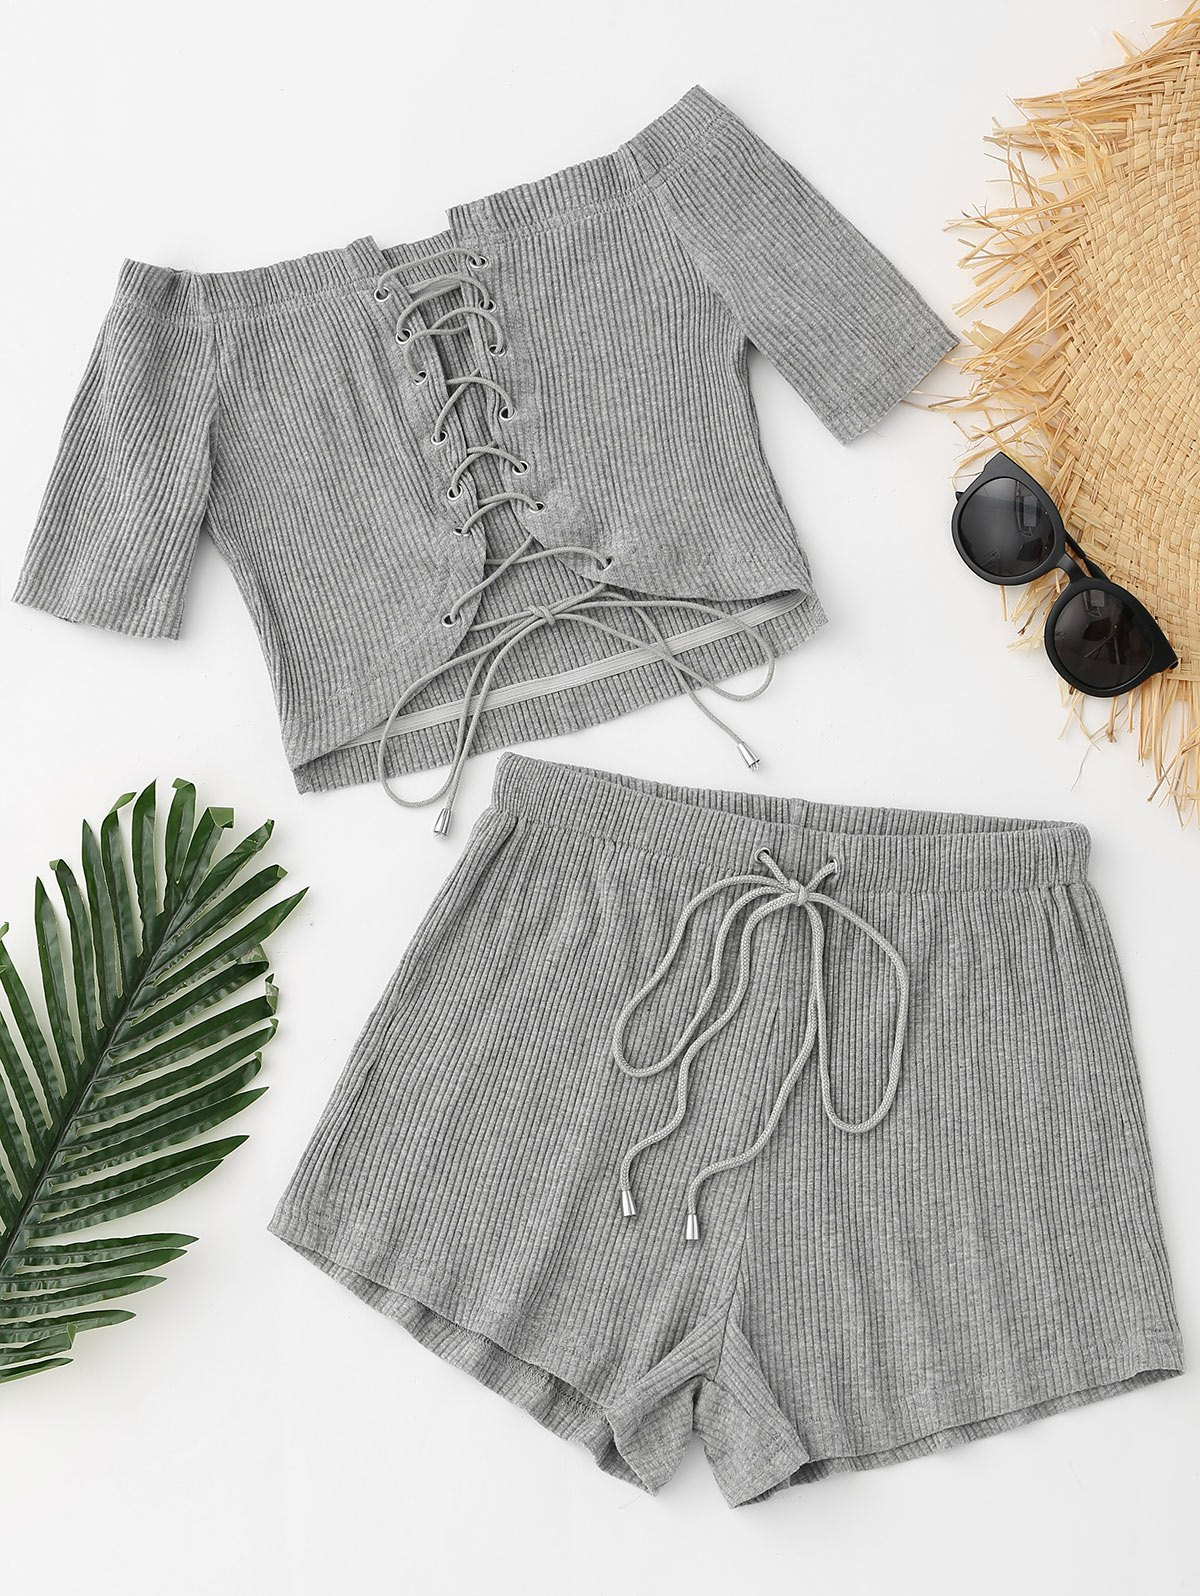 Lace up Ribbed Crop Top and Drawstring Shorts 244226903